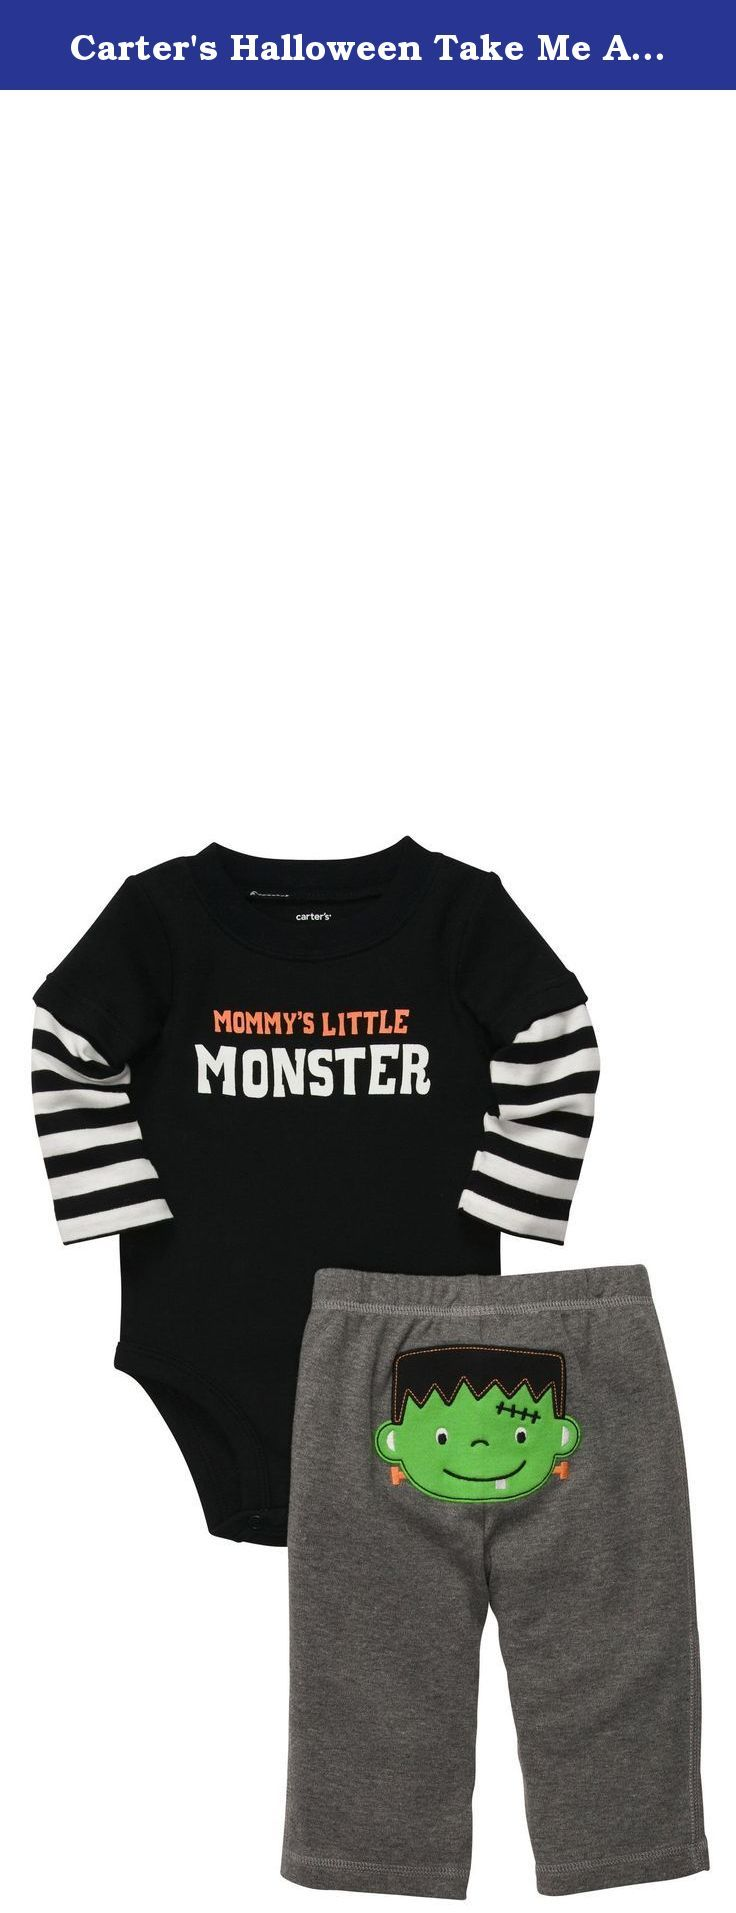 Carter's Halloween Take Me Away 2-pc Set - Black- 6 Months. Carters Halloween Take Me Away 2-pc Set - Black Carter's is the leading brand of children's clothing, gifts and accessories in America, selling more than 10 products for every child born in the U.S. The designs are based on a heritage of quality and innovation that has earned them the trust of generations of families.